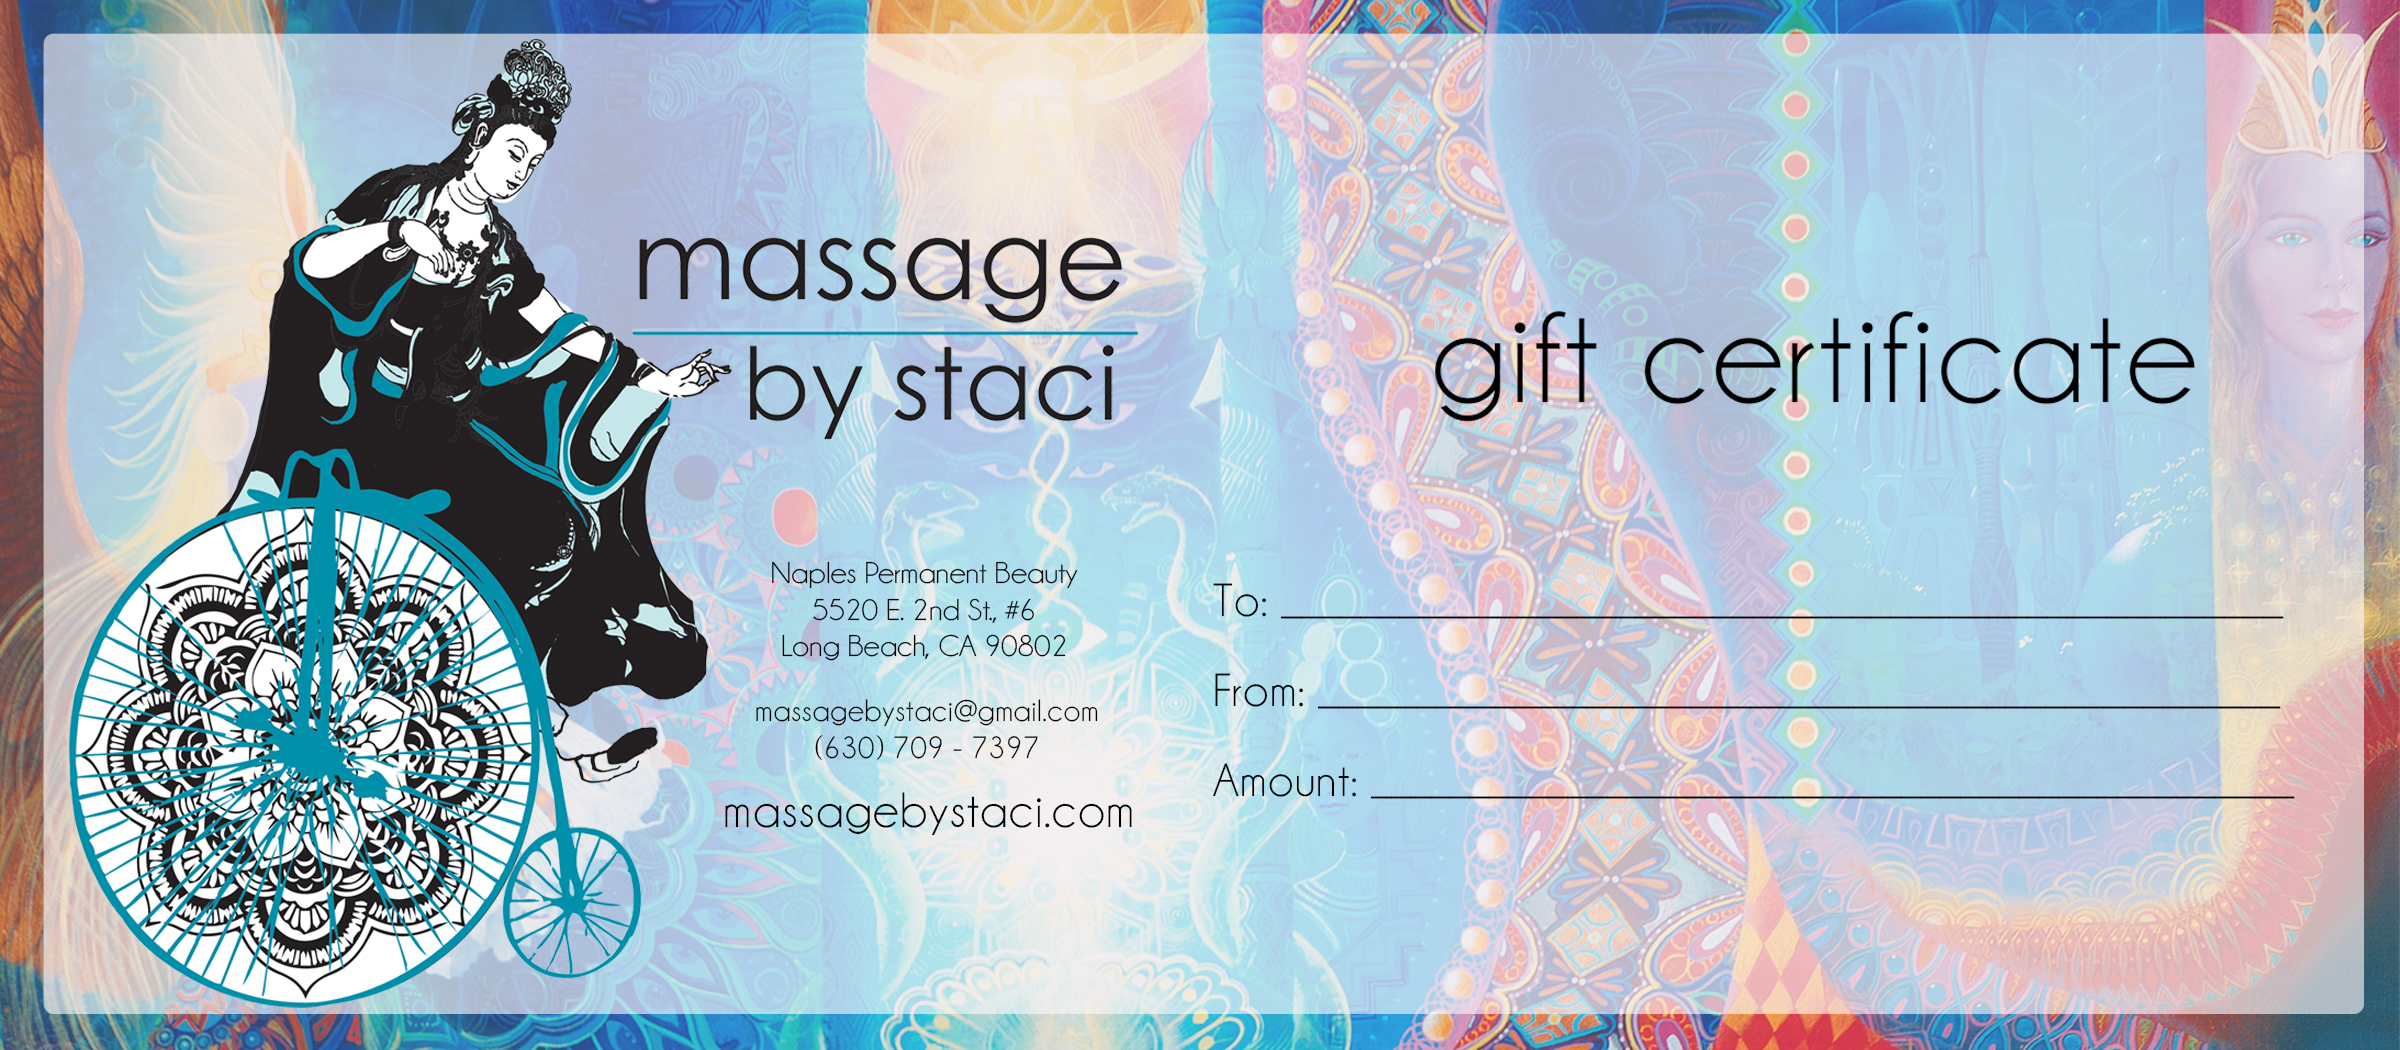 Gift certificates available! -